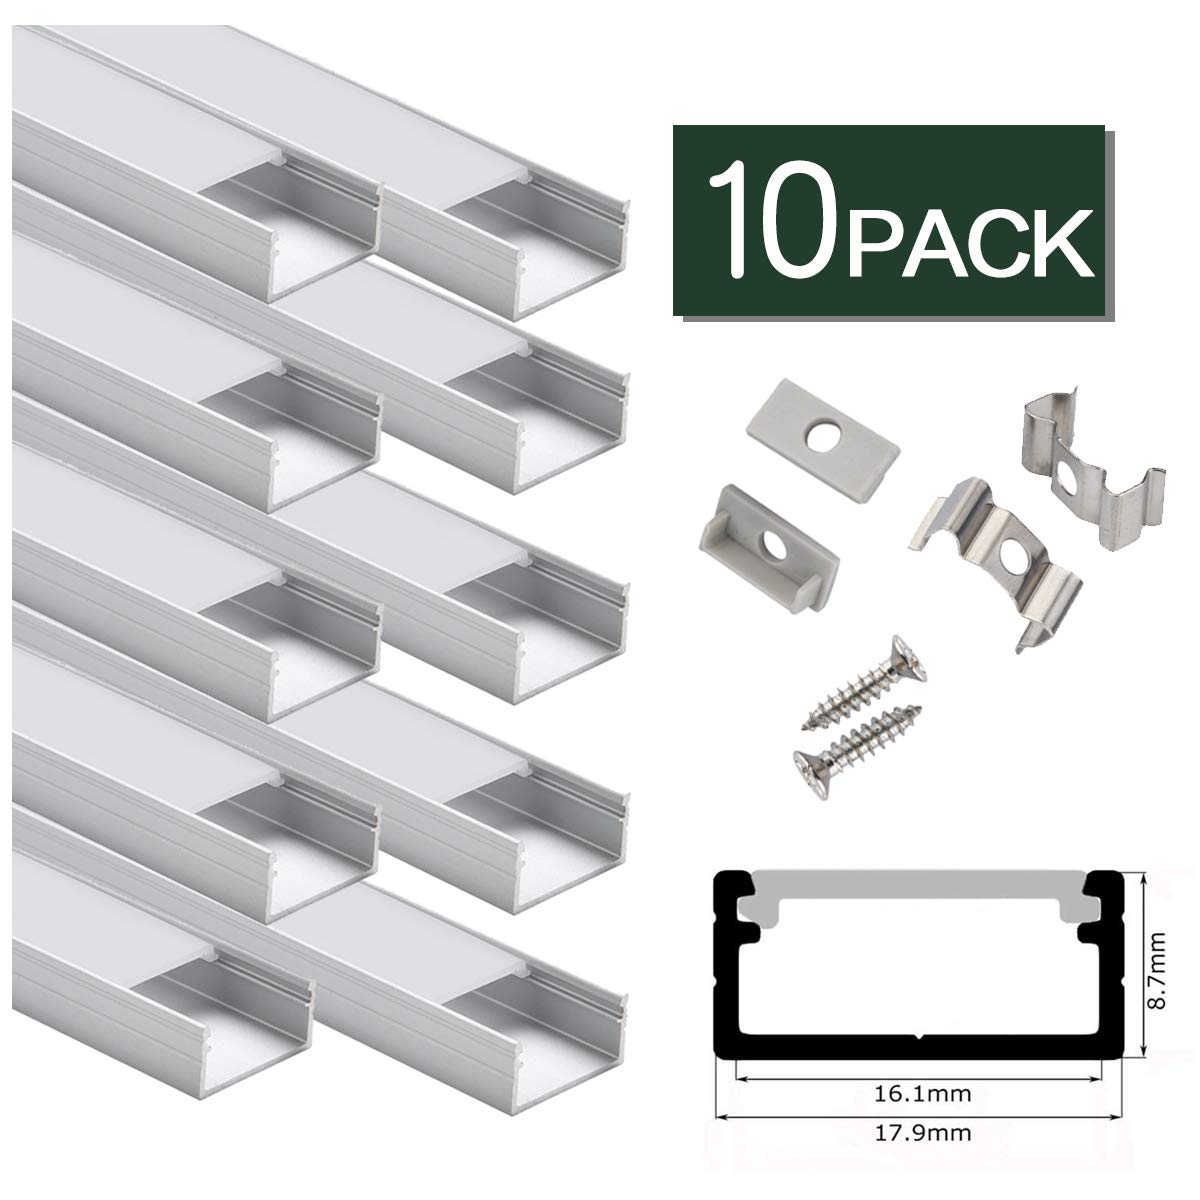 LED Aluminum Channel Wide 10-Pack for 16mm Wide Philips Hue Plus 2nd Generation,U Shape LED Aluminum Channel System with Cover, End Caps and Mounting Clips Aluminum Profile for LED Strip Light Instal